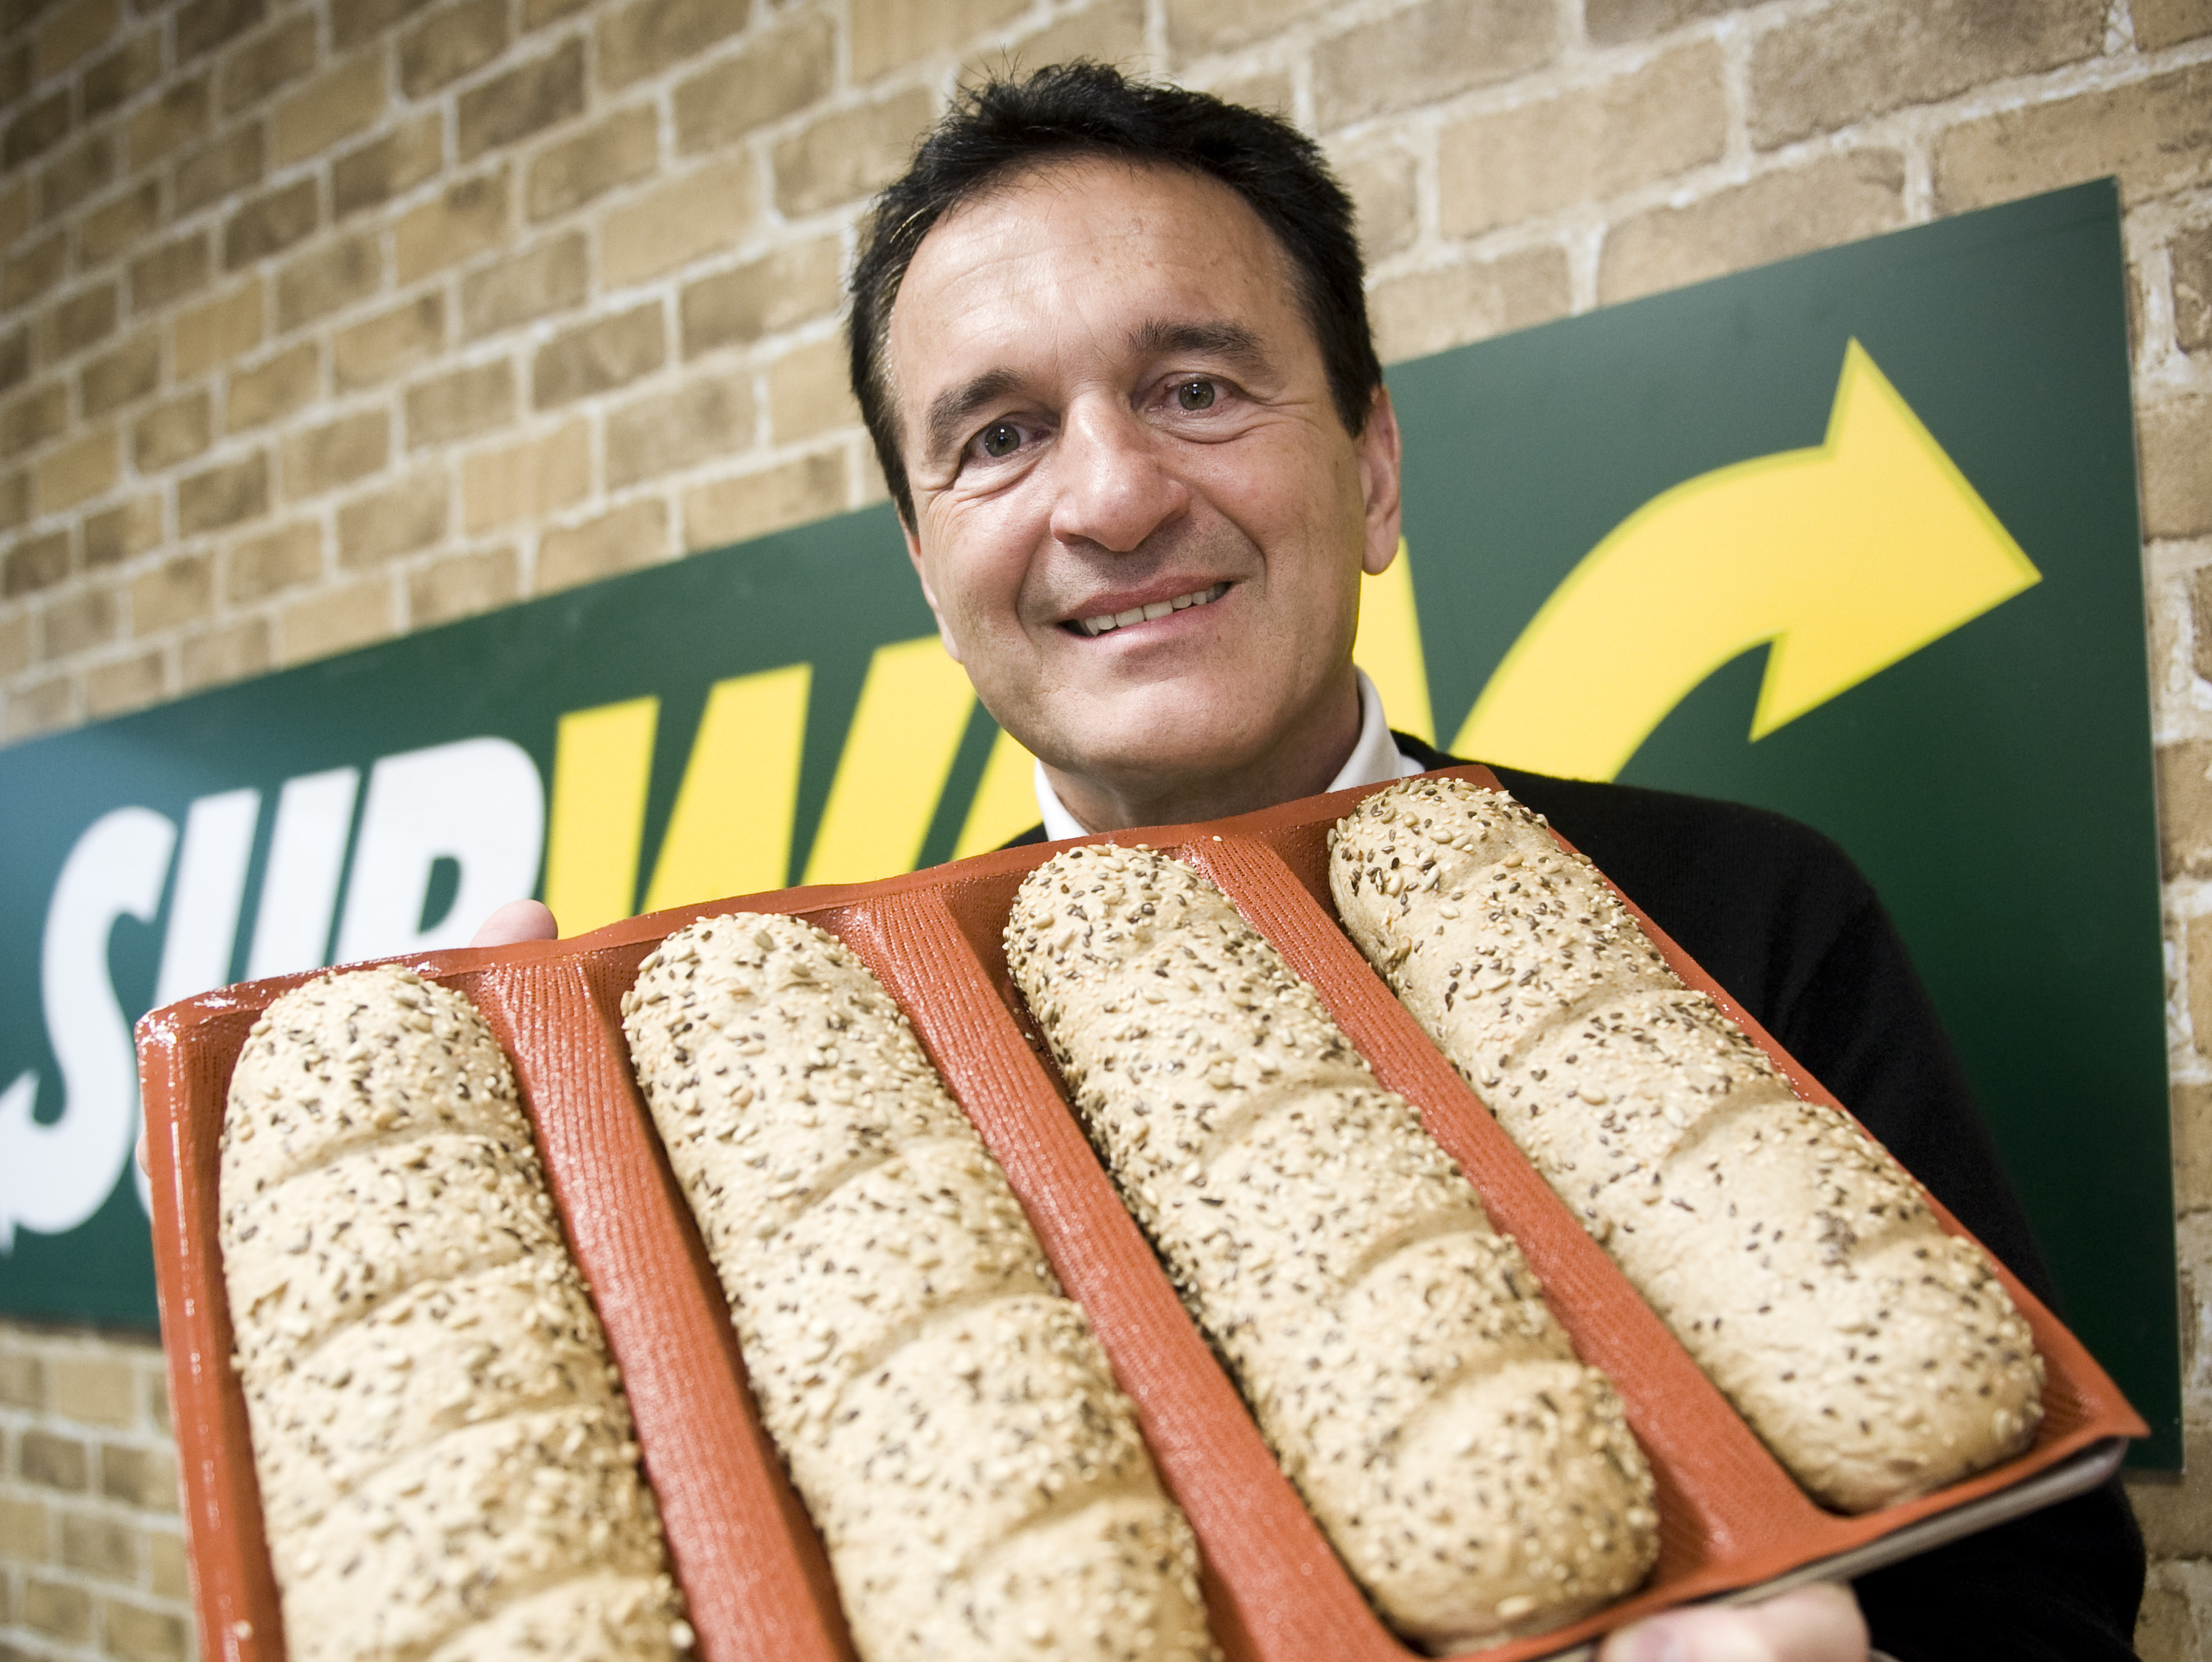 Subway Phasing Out Bread Additive After Blogger Flags Health Concerns